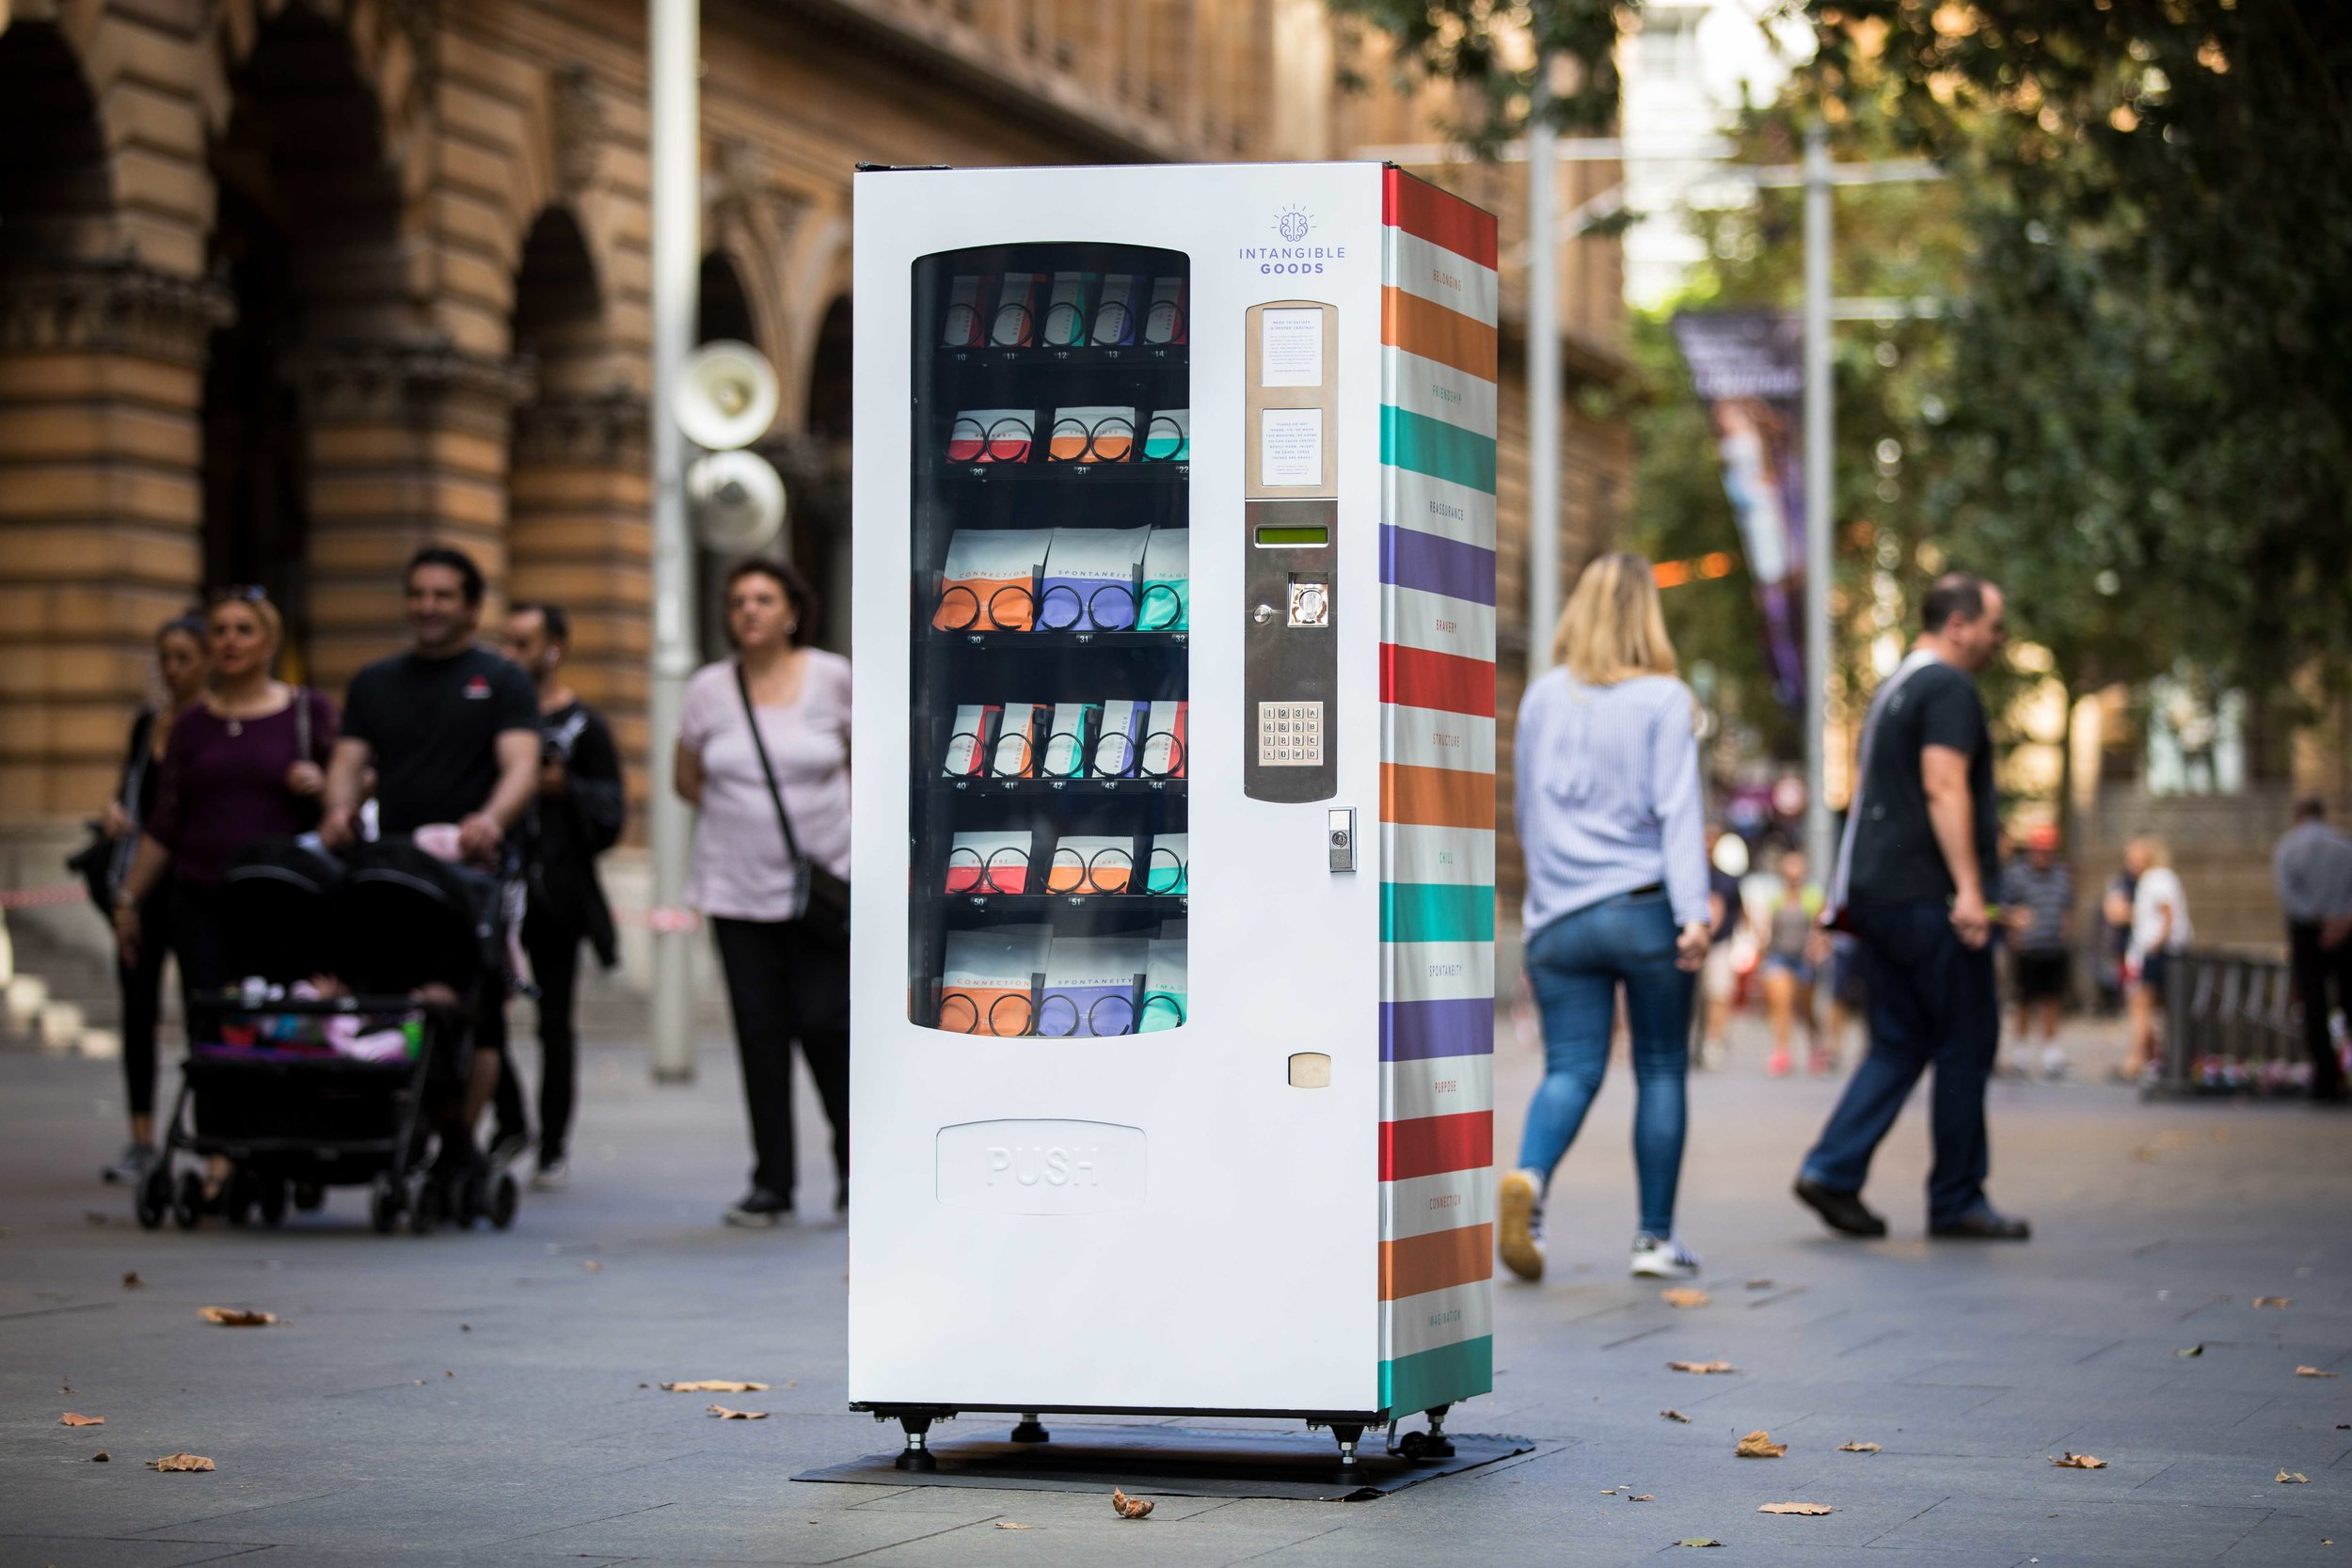 The Intangible Goods vending machine doing its thing in Martin Place.